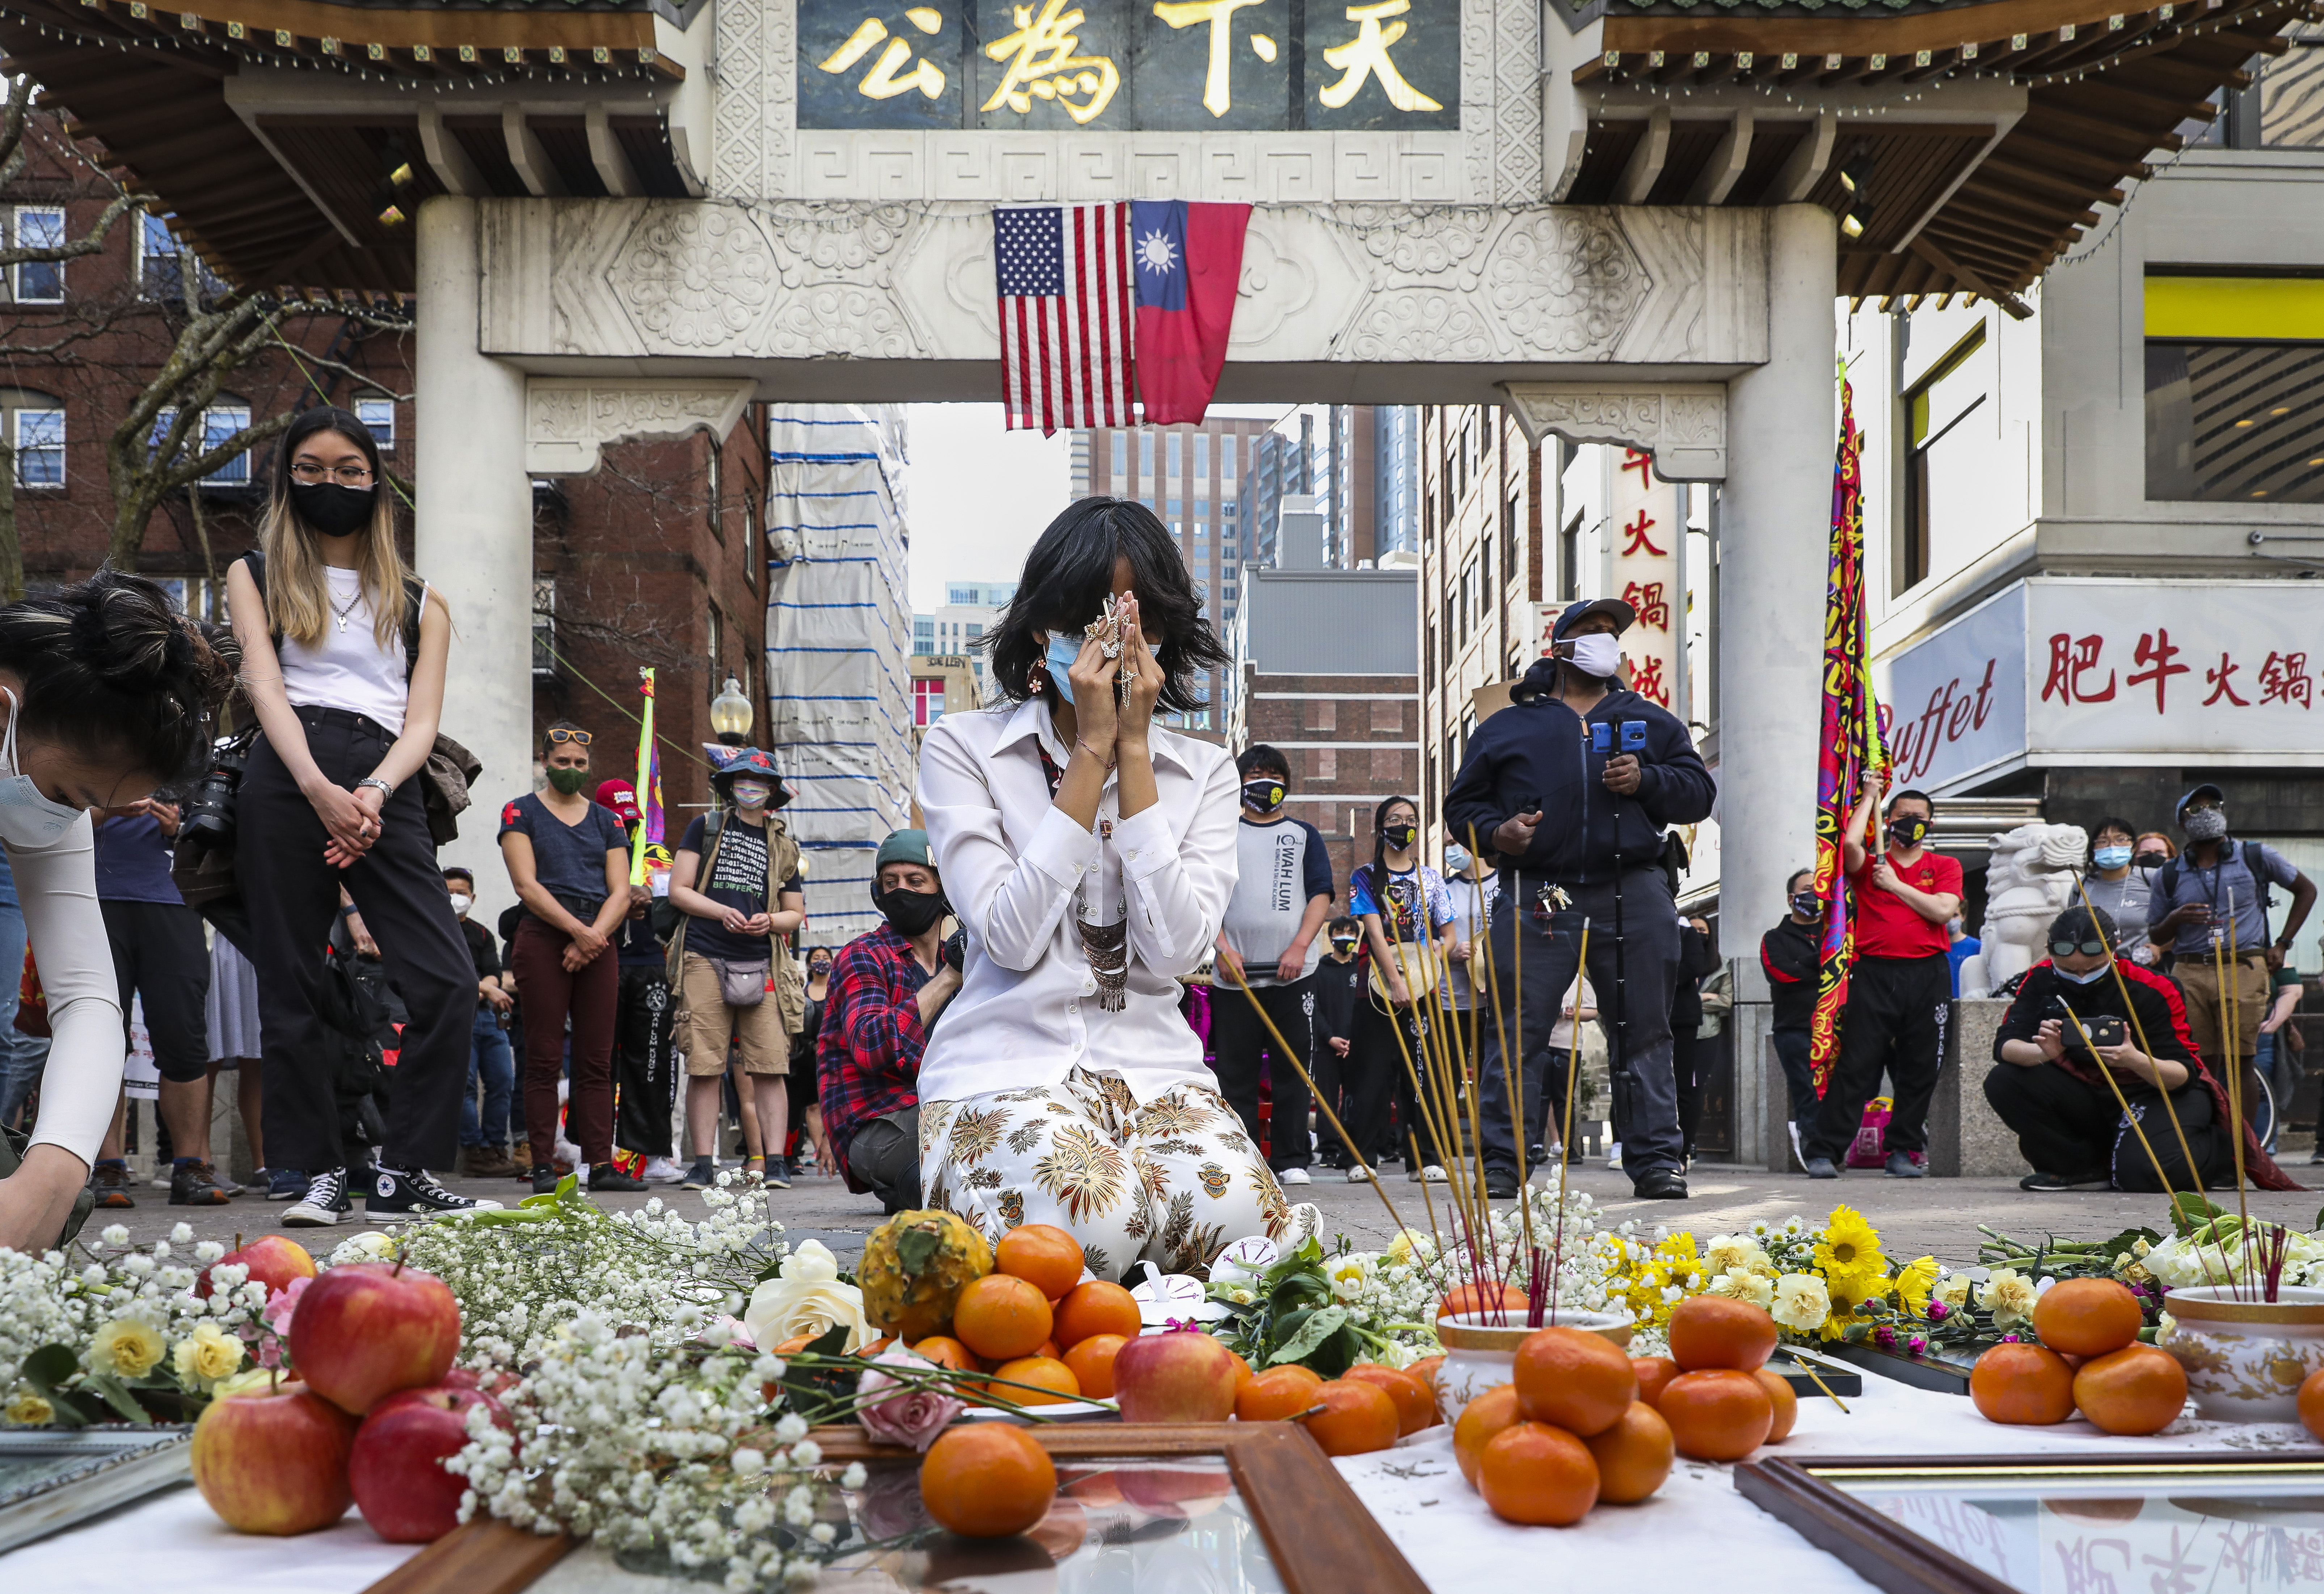 Fiona Phie in a moment of silence  after placing an offering among flowers, candles, and incense while honoring victims of anti-Asian hate, on April 10, 2021 in Boston.